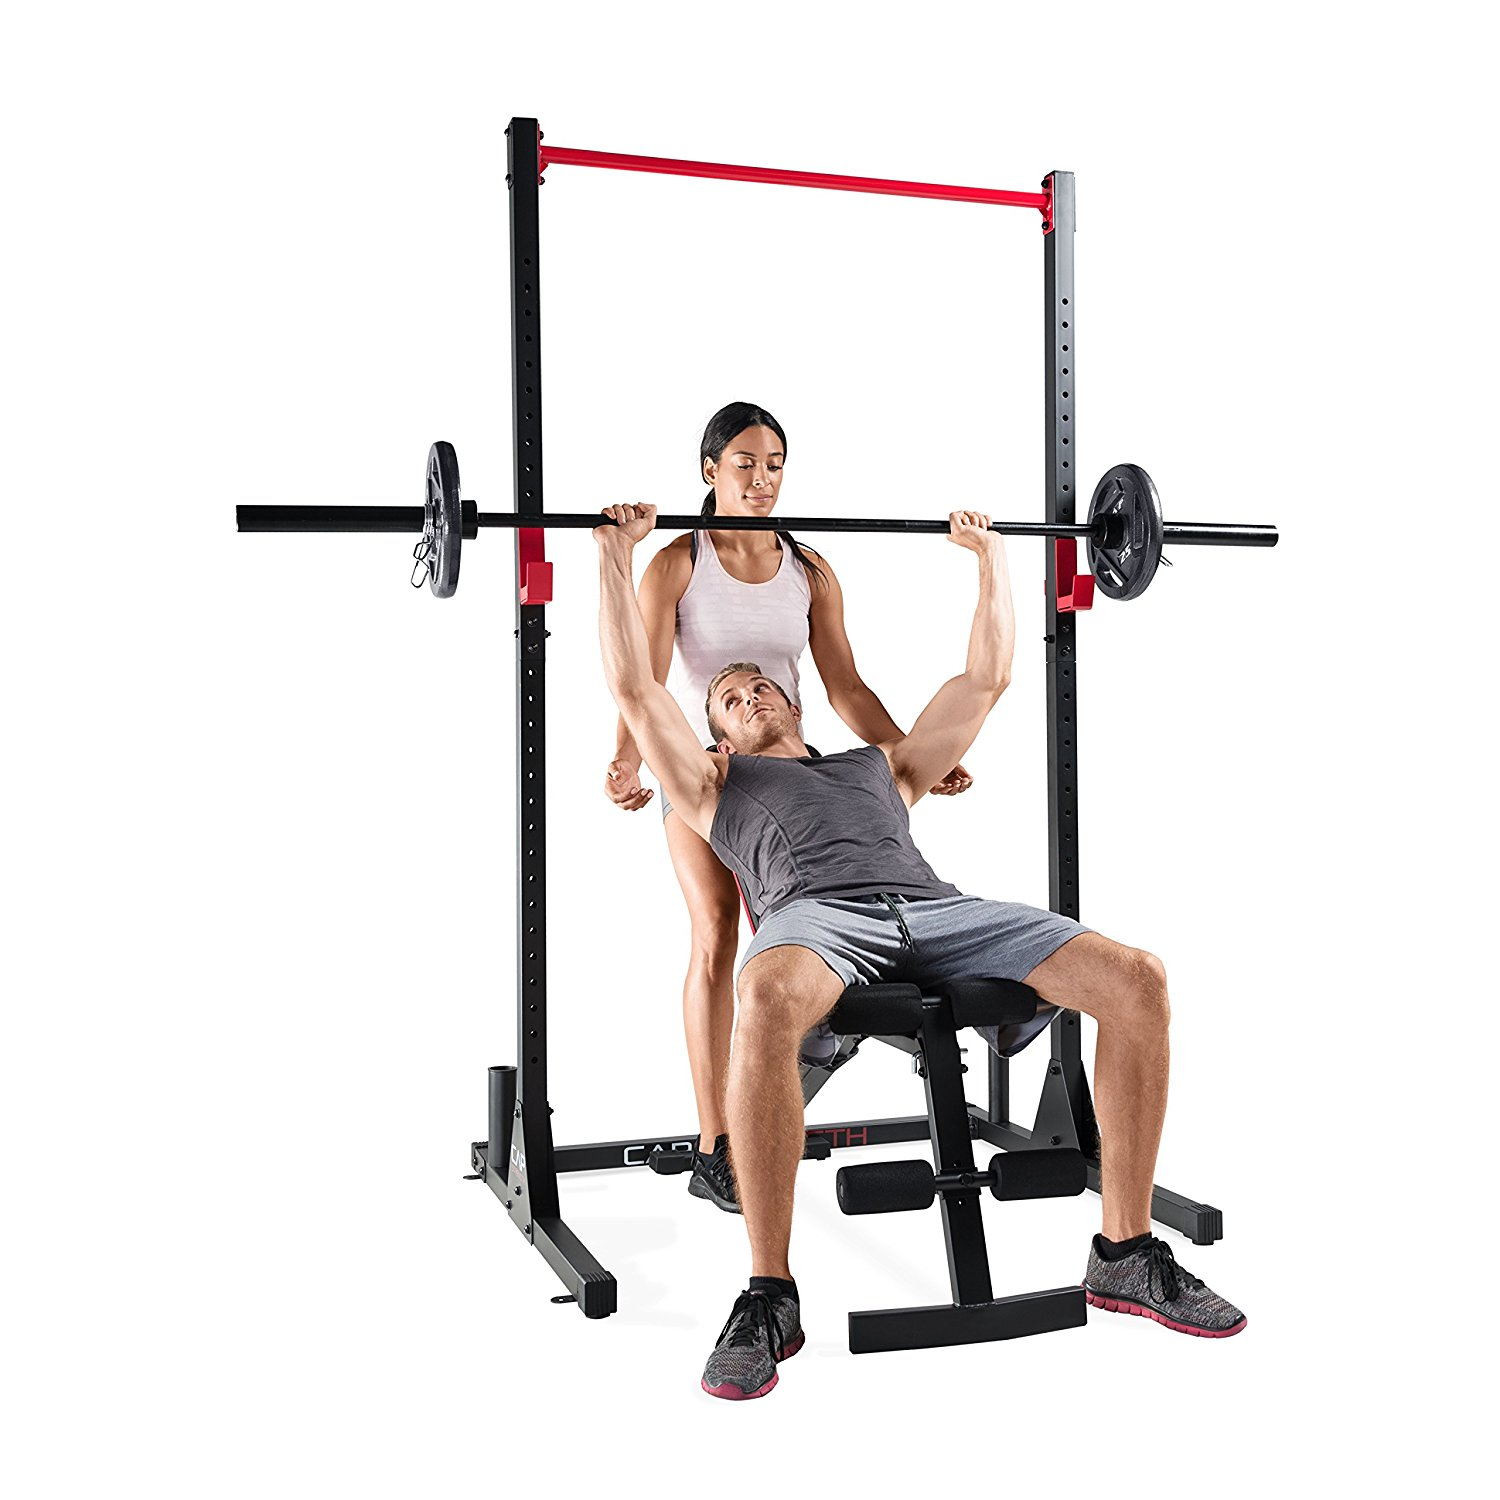 squat rack with guy doing bench press